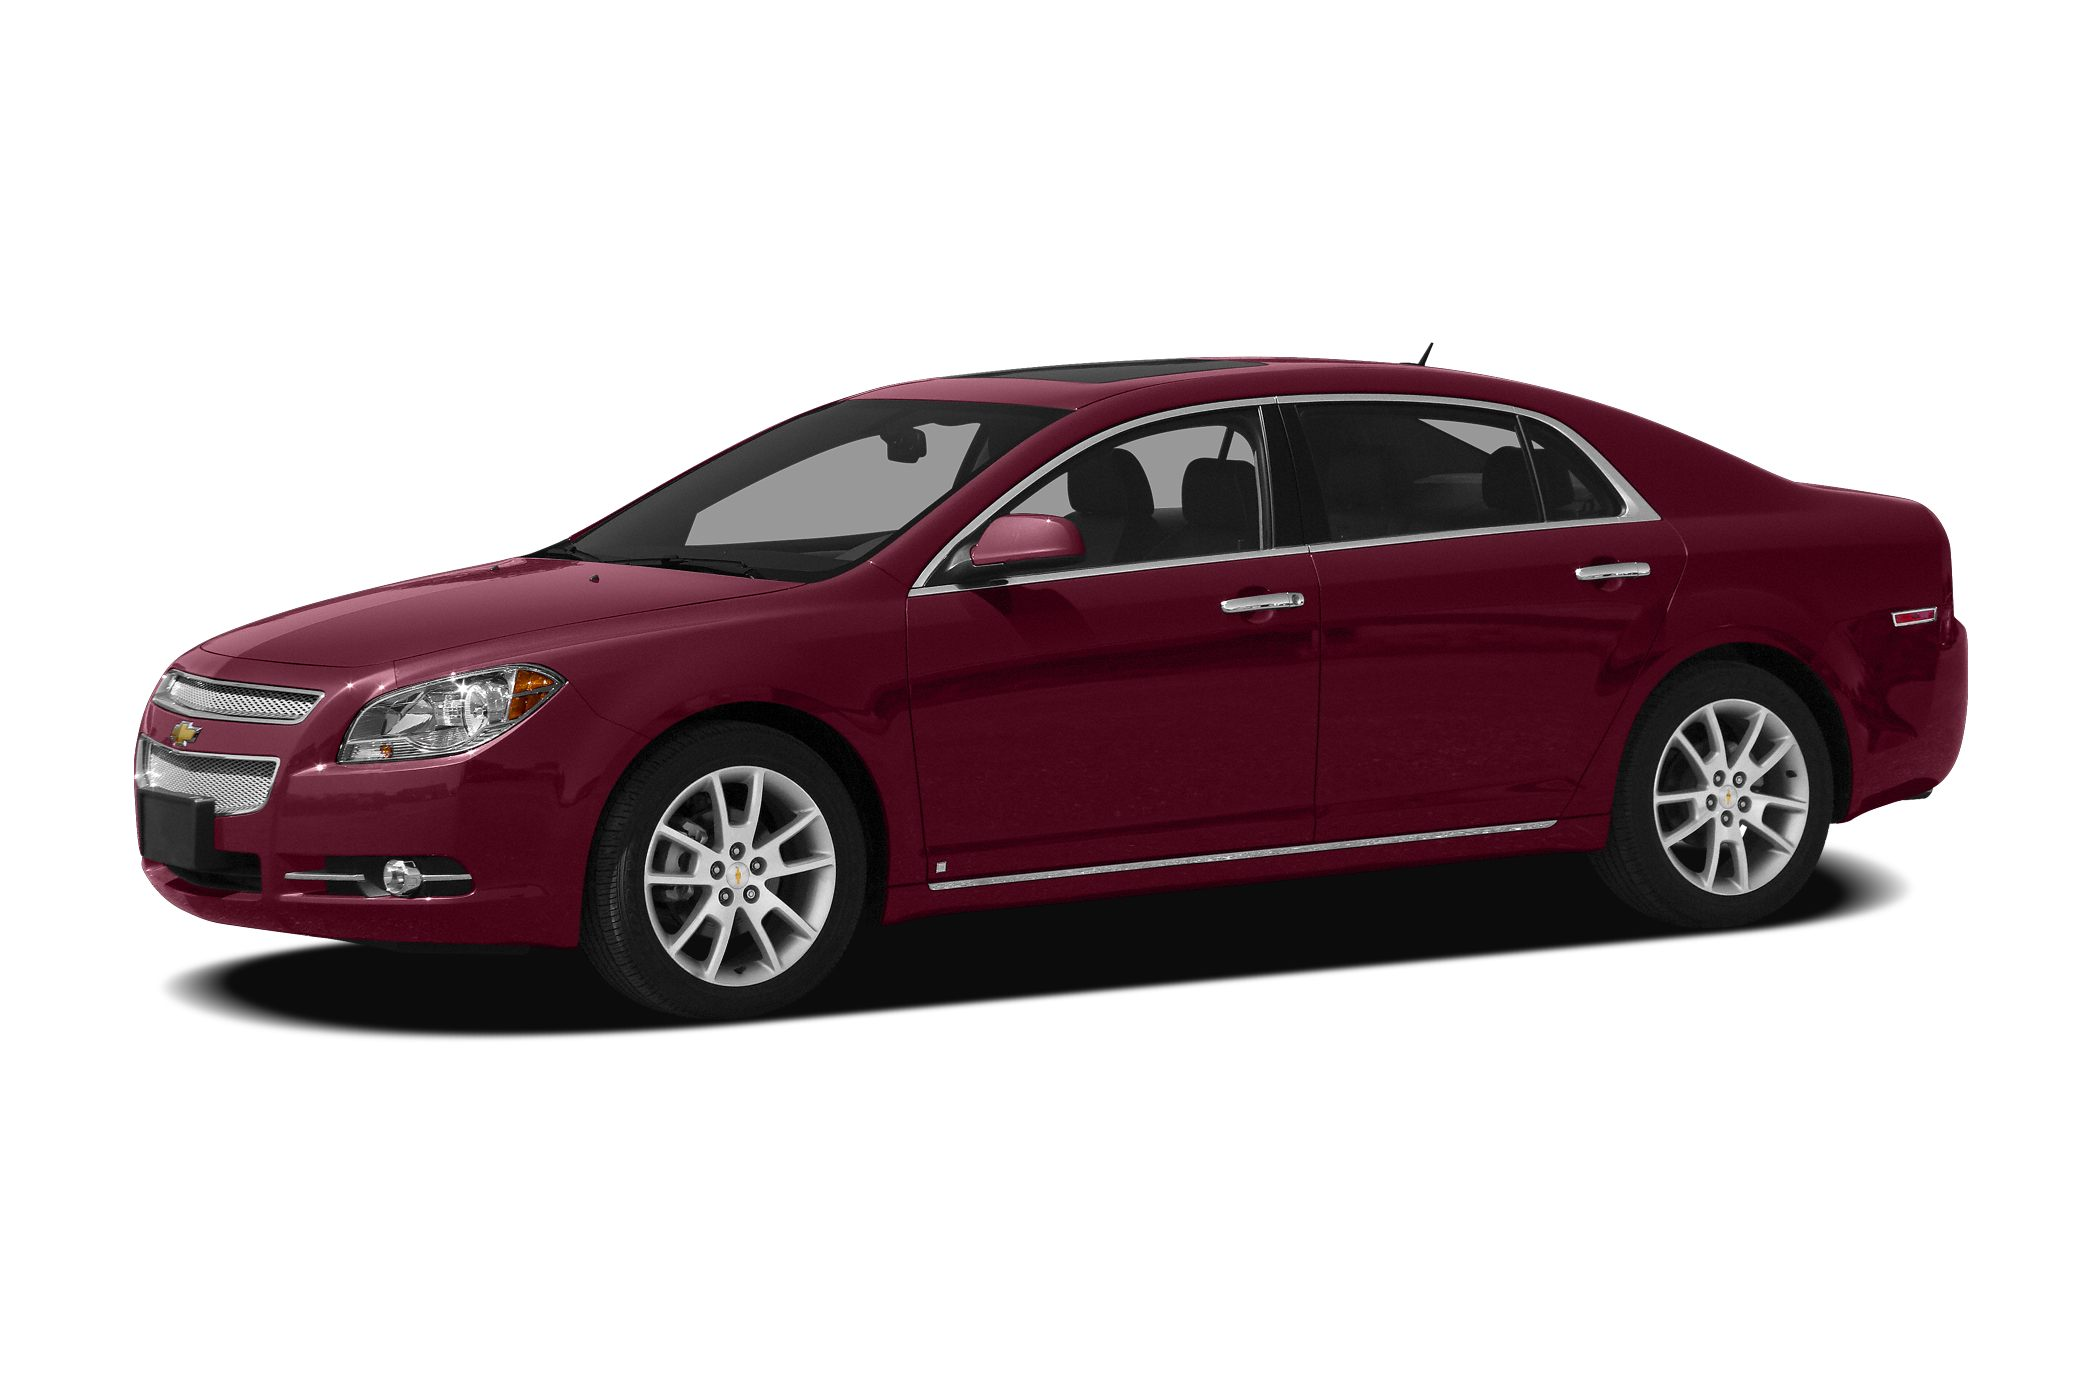 2010 Chevrolet Malibu LTZ Sedan for sale in Gainesville for $12,000 with 101,942 miles.